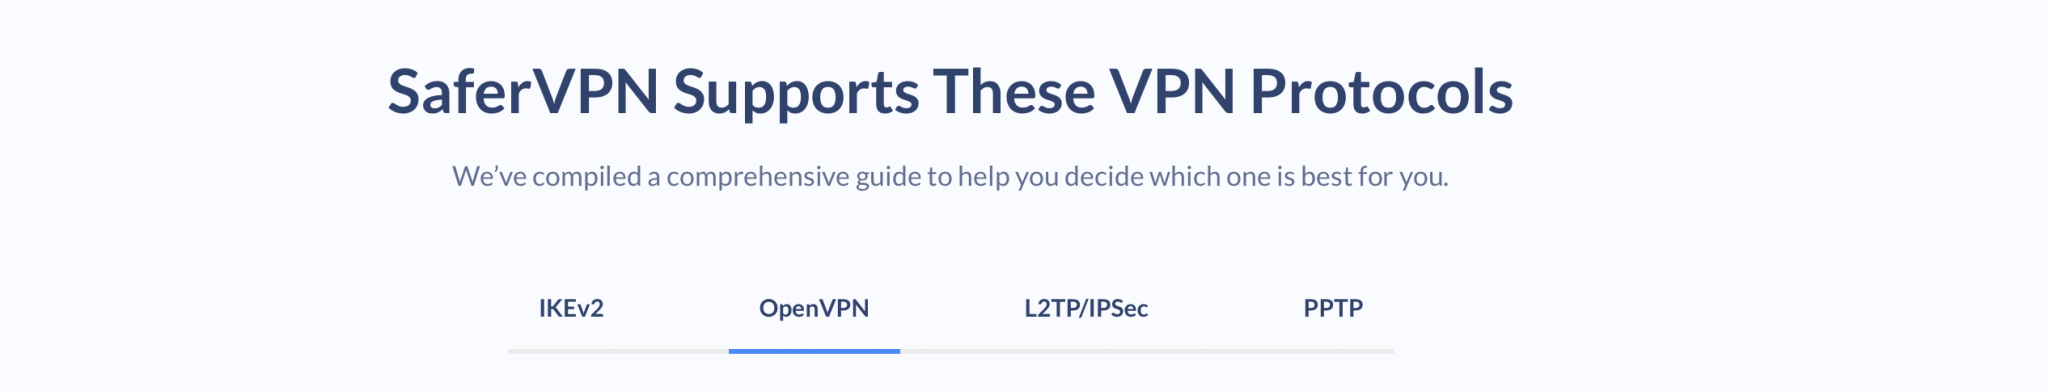 SaferVPN Protocols